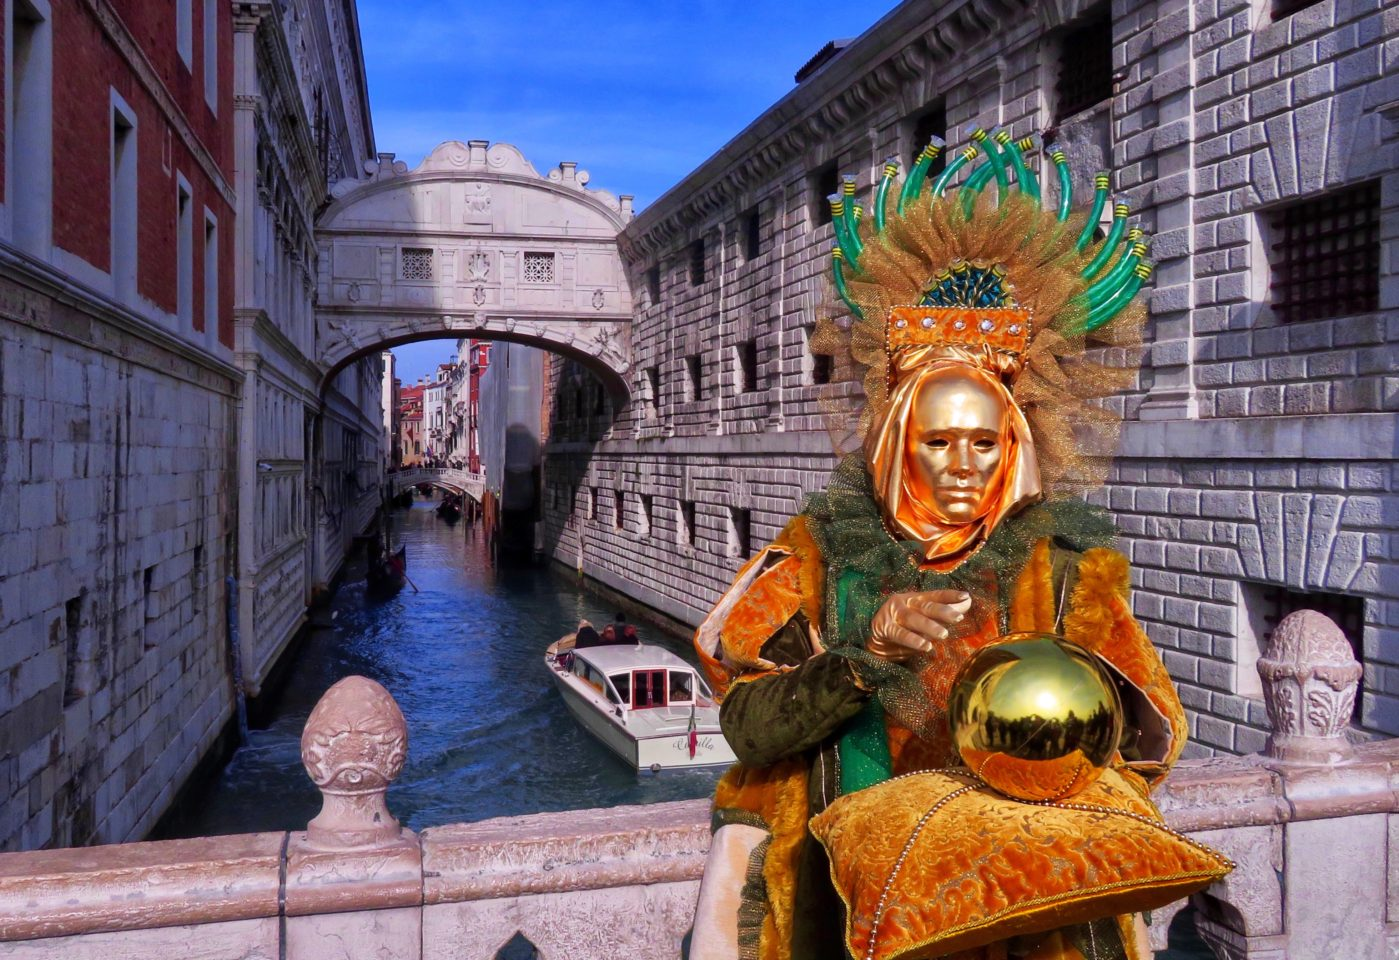 Venice at Carnival time ~ Simply Magical ...